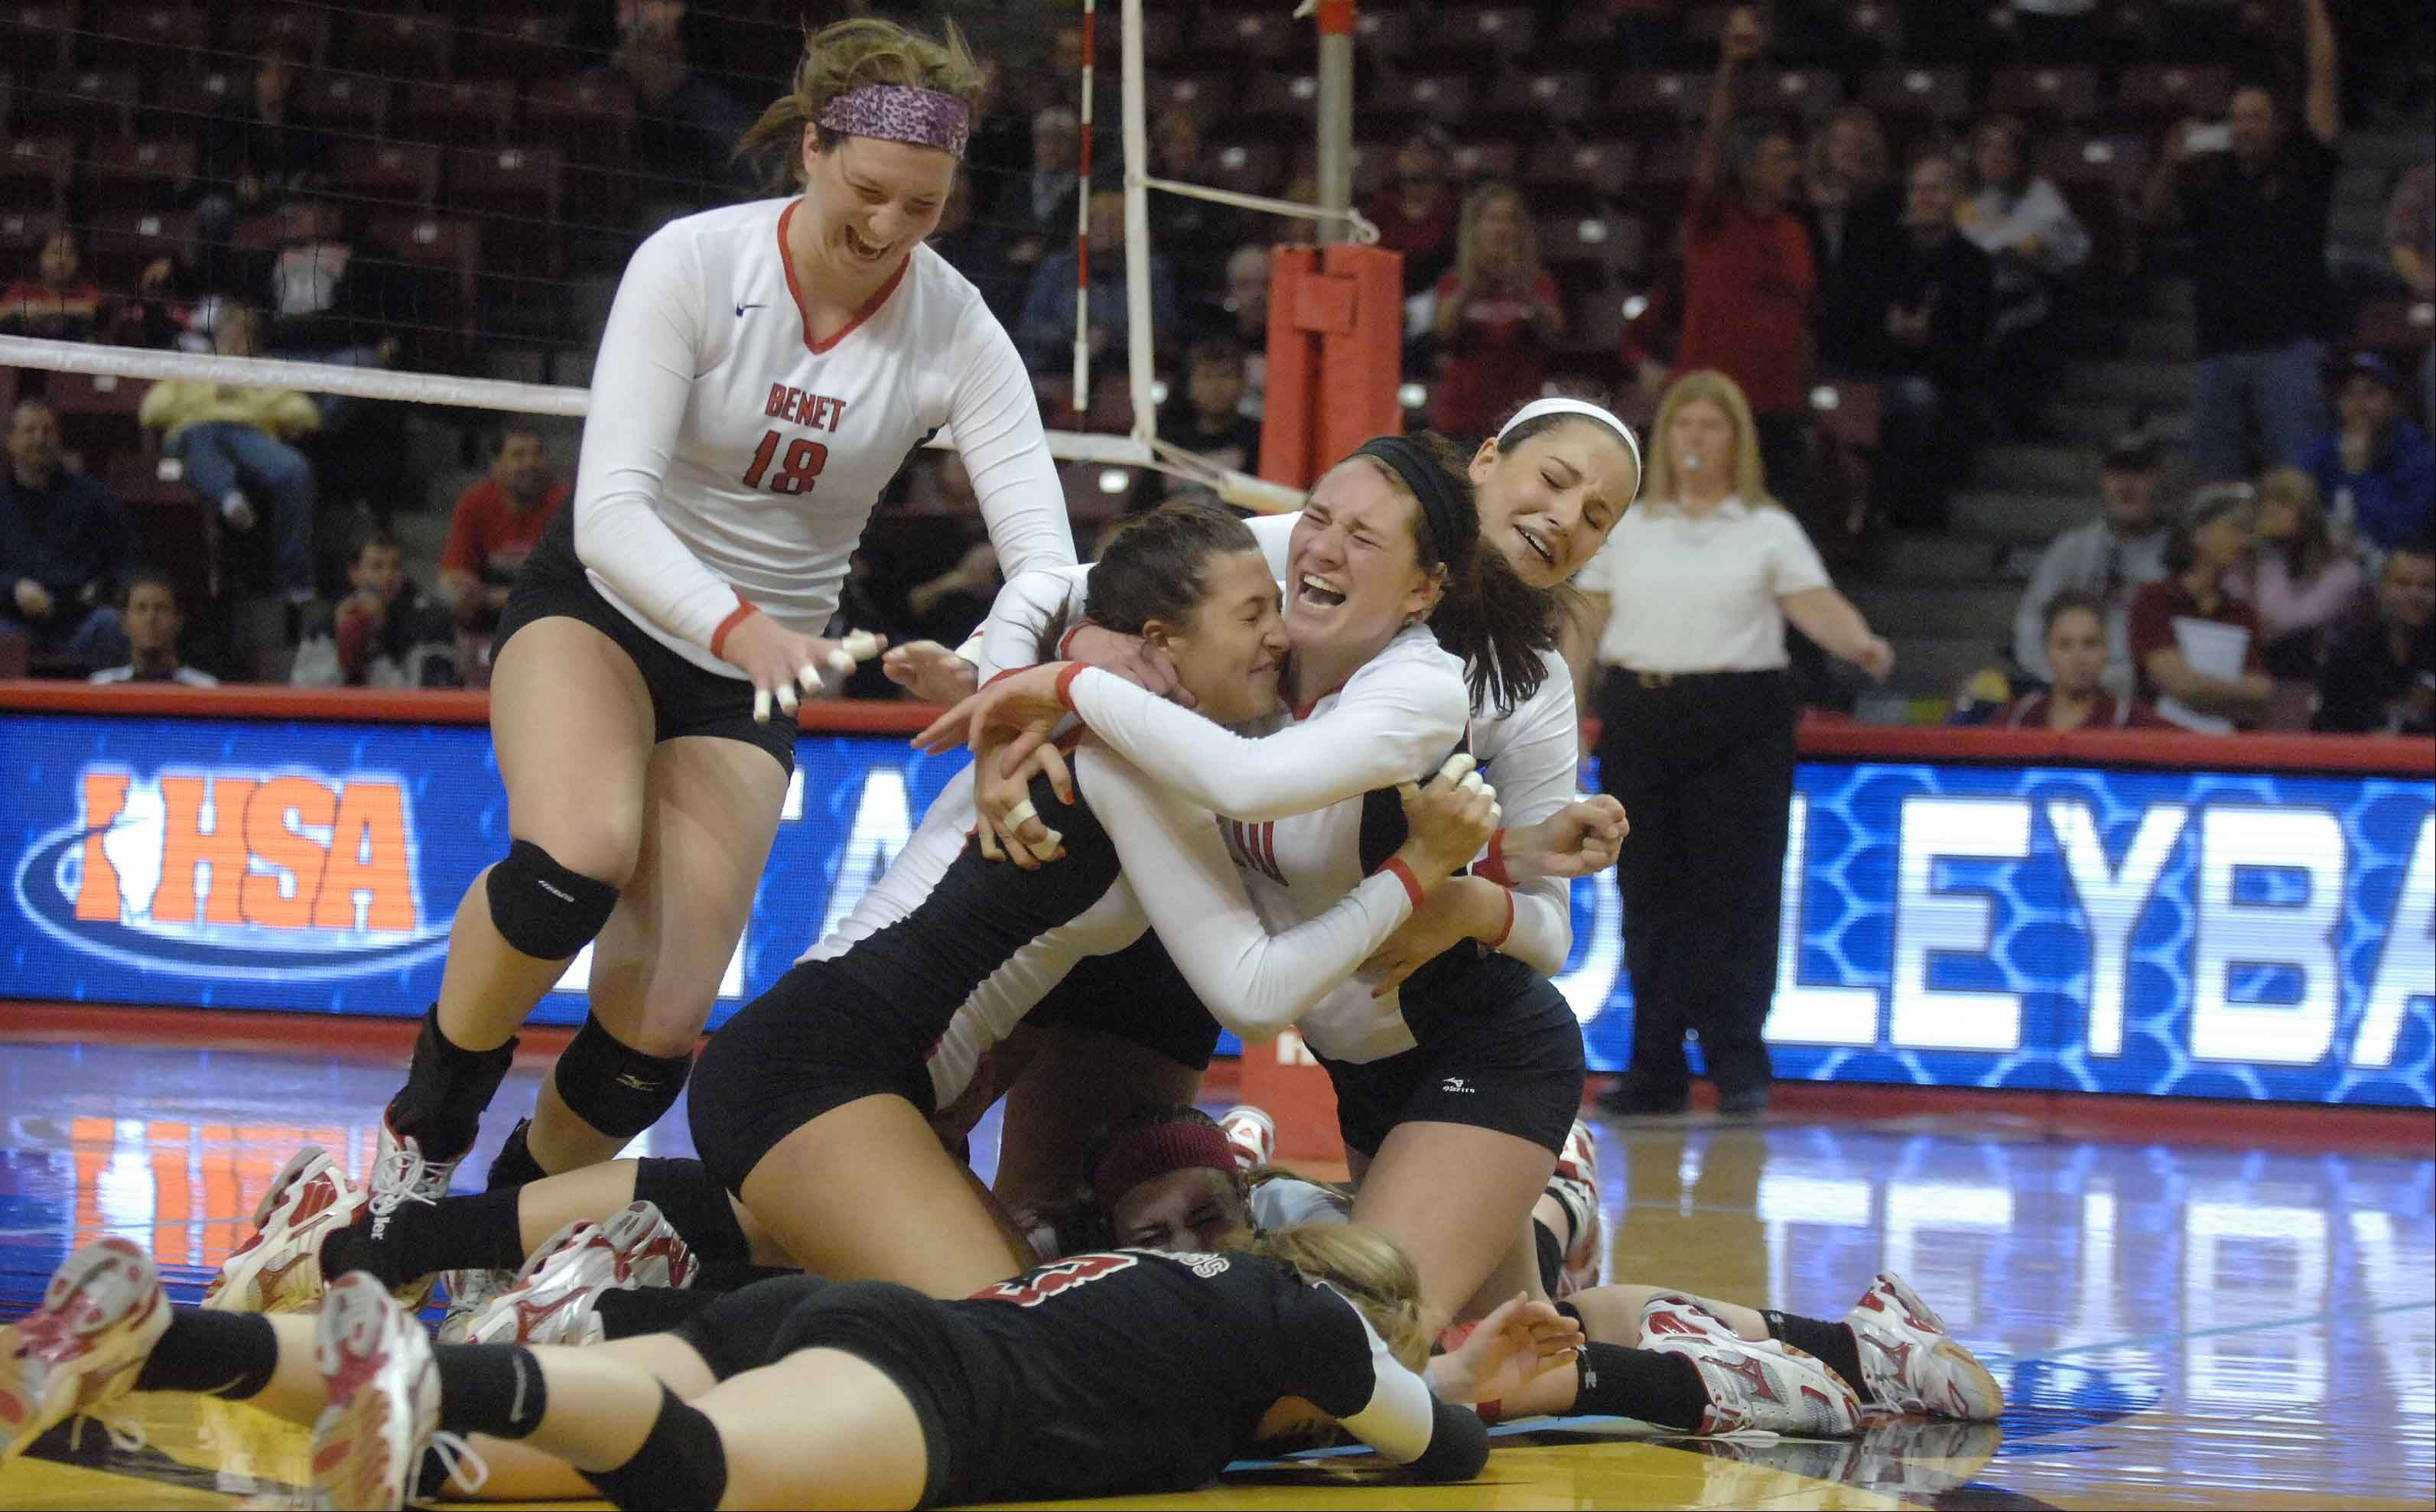 Benet players celebrate their Class 4A volleyball championship win over Cary-Grove Saturday in Normal.